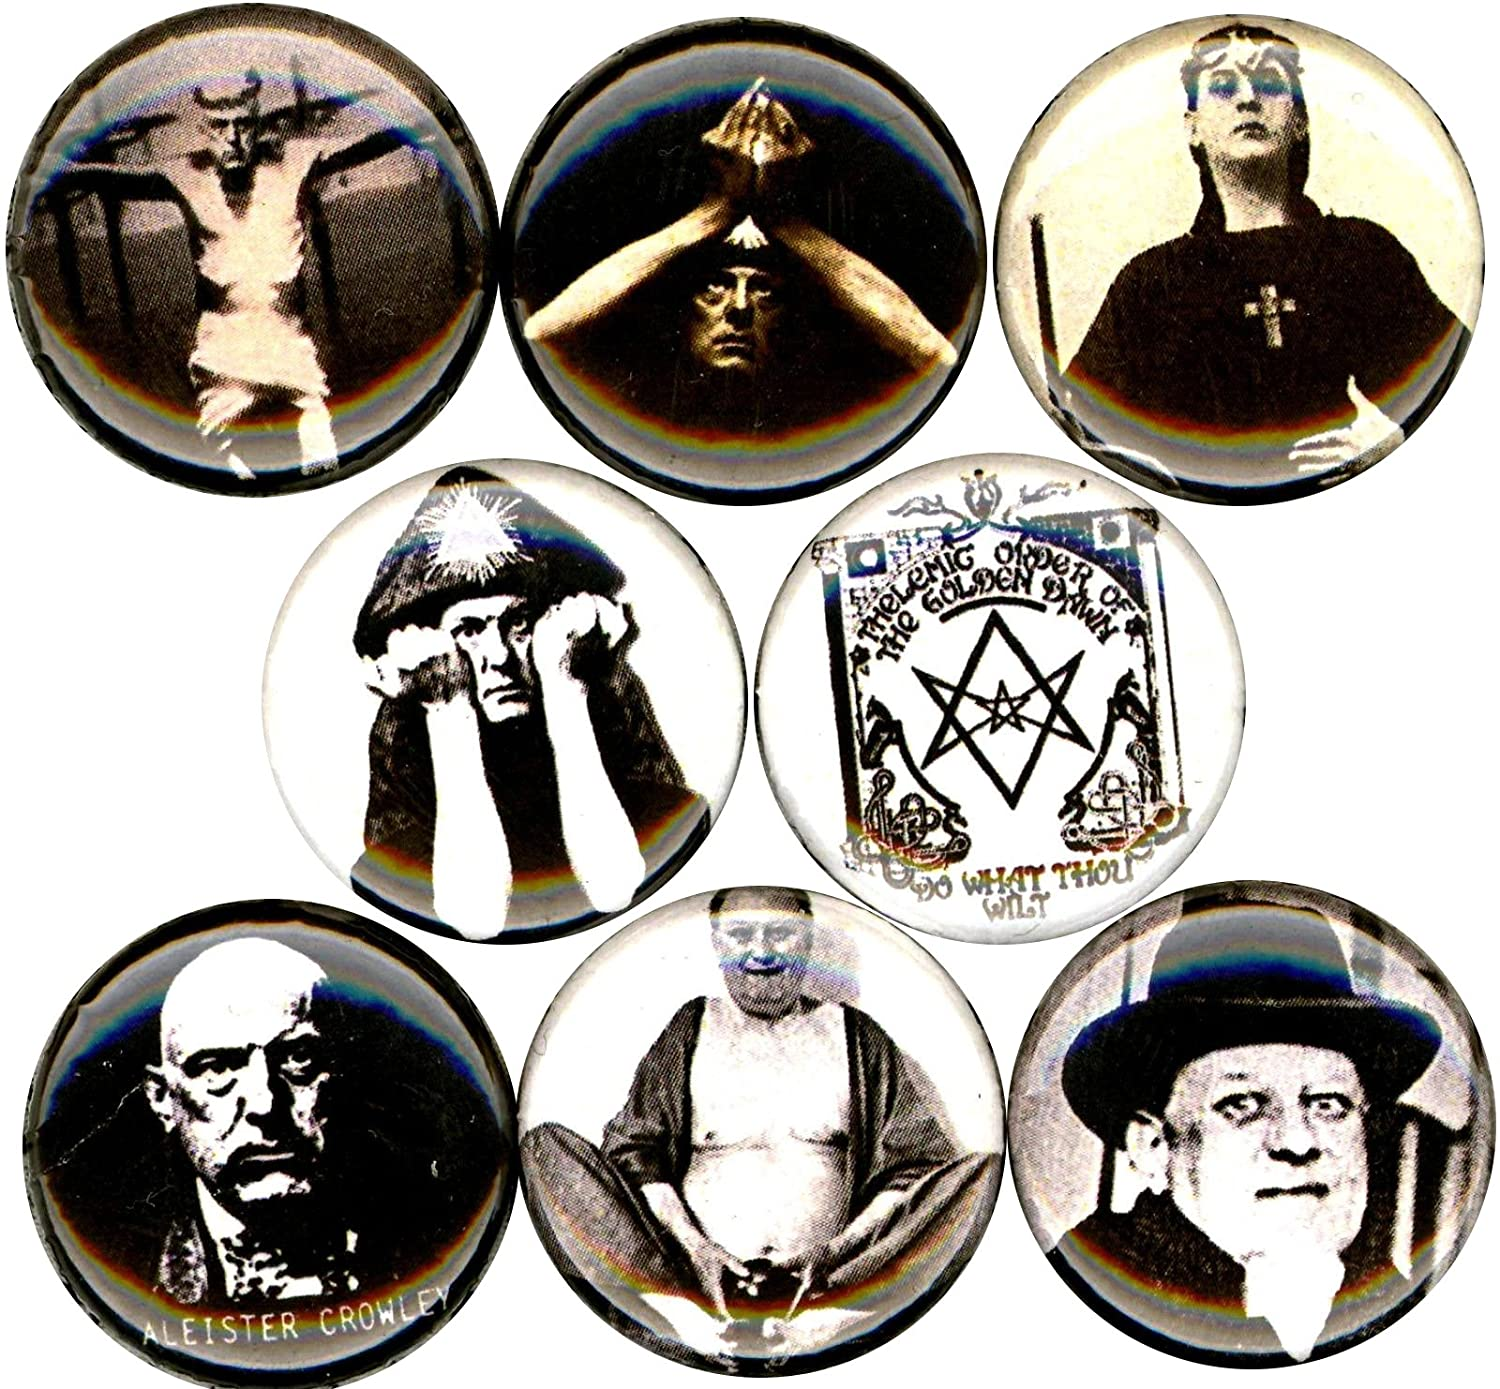 ALEISTER CROWLEY 8 NEW 1 Inch (25mm) Set of 8 Pinback Buttons Badges Pins